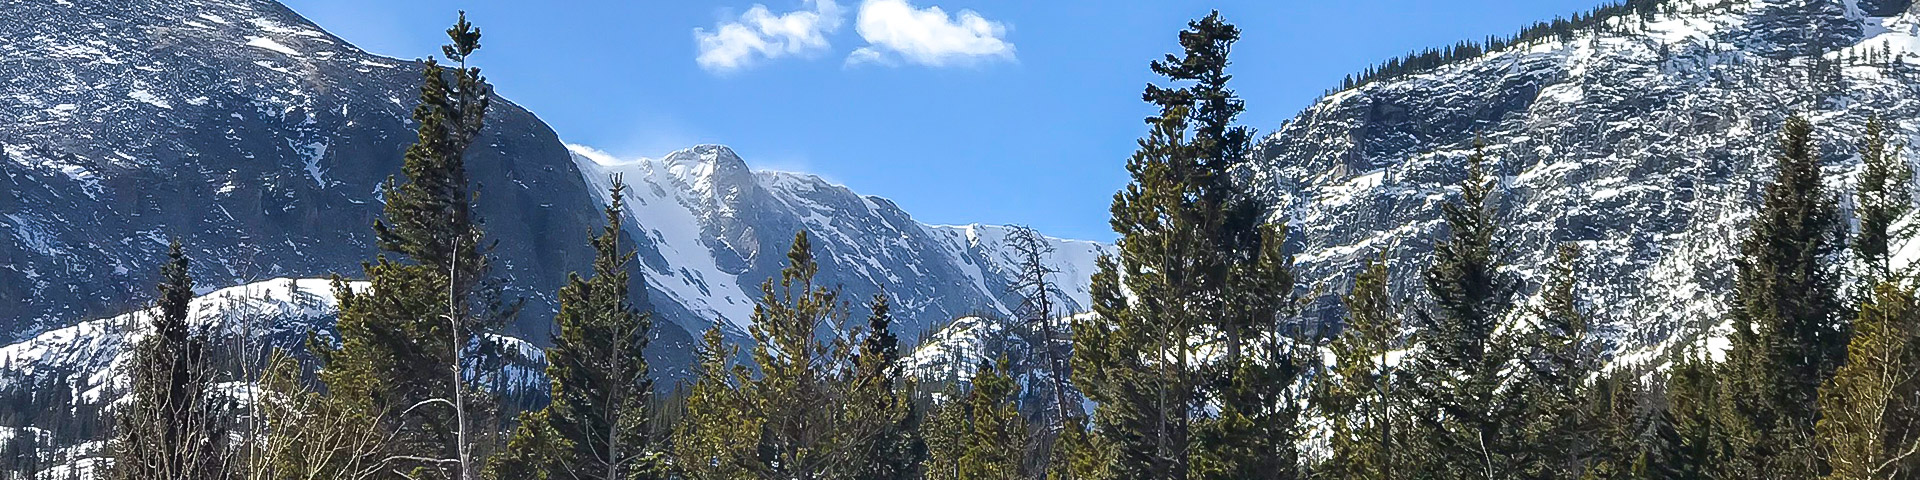 Panorama of Bear Lake trail in Rocky Mountain National Park, Colorado